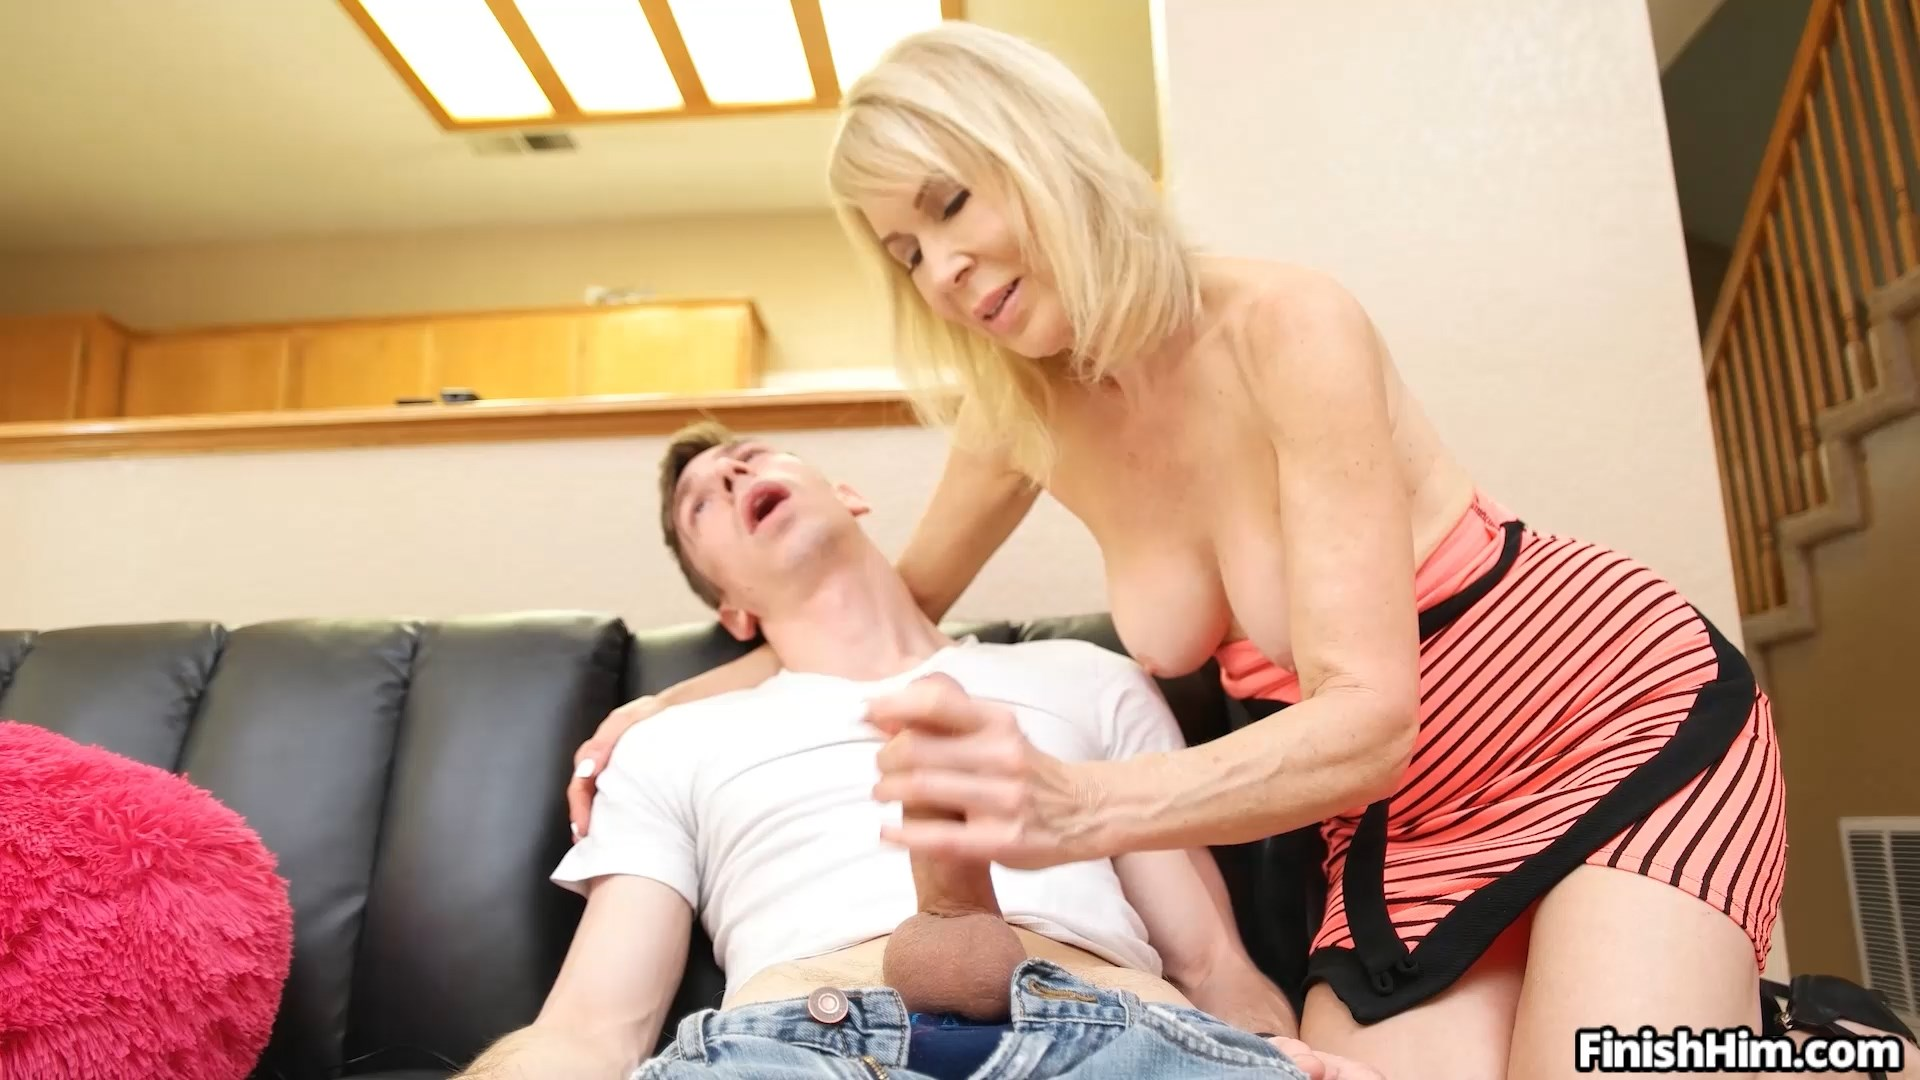 Finish Him - Erica Lauren - Step Son Reach Around 1080p